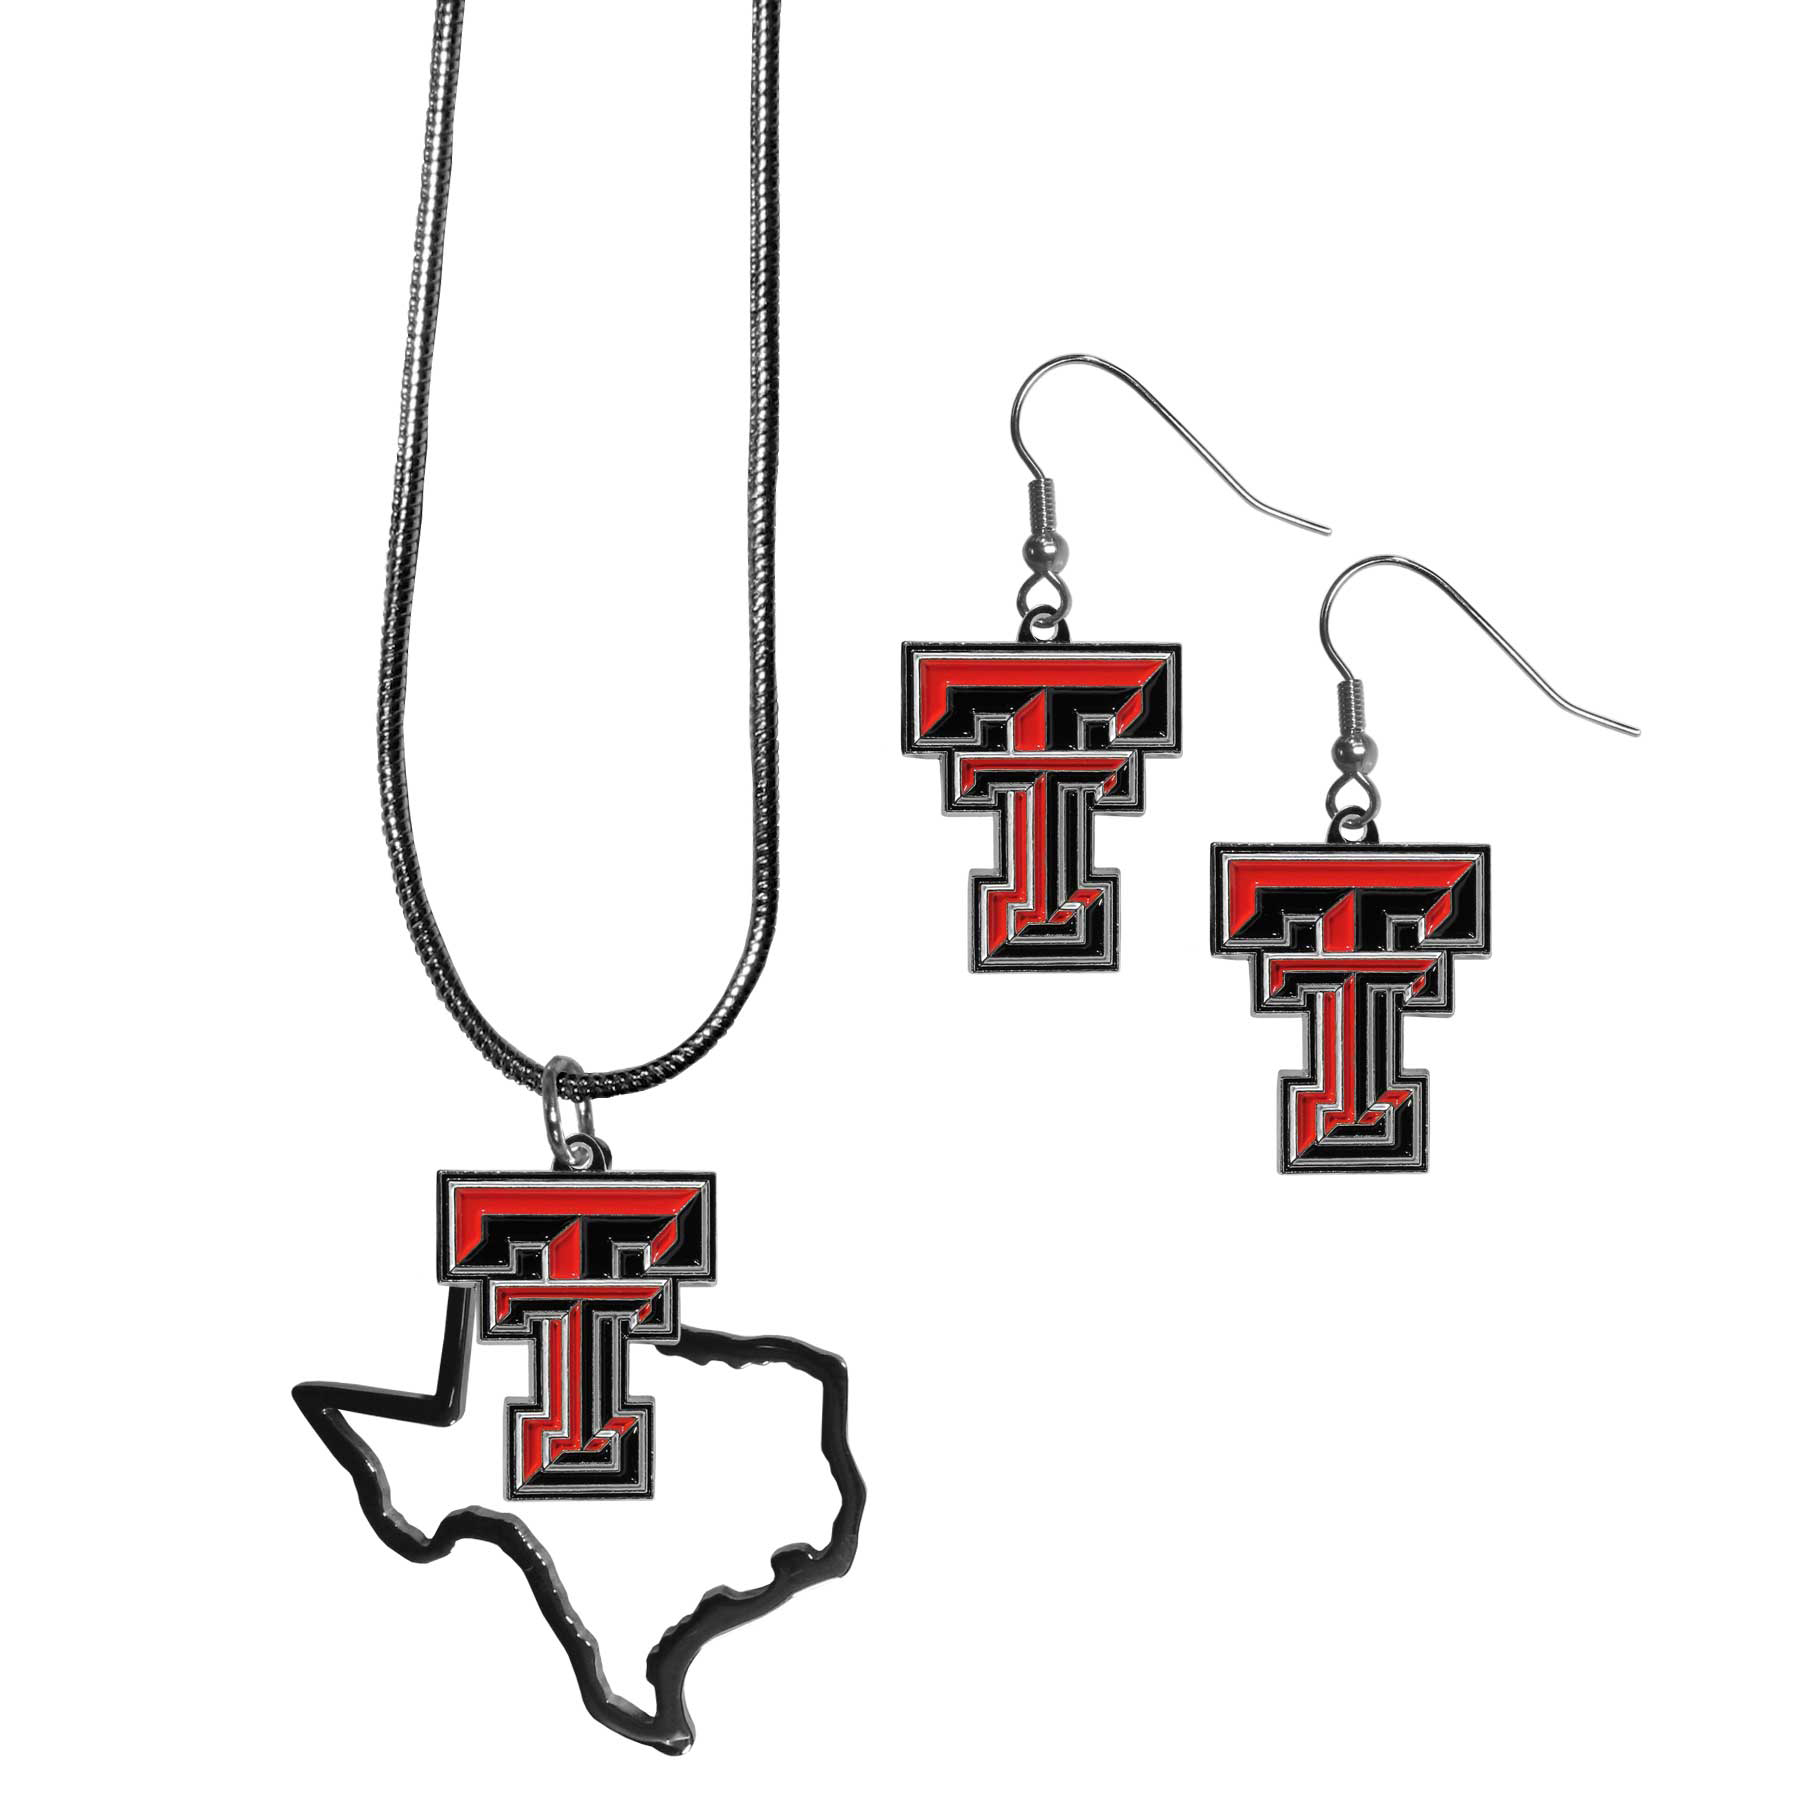 Texas Tech Raiders Dangle Earrings and State Necklace Set - Get in on the trend! State themes are a trend that just keeps getting more popular and this jewelry set takes the state style and give it a sporty twist with a Texas Tech Raiders necklace that features an Arizona state outline charm paired with a beautiful team charm and matching team charm dangle earrings. The earrings feature hypoallergenic fishhook posts that are nickel free.